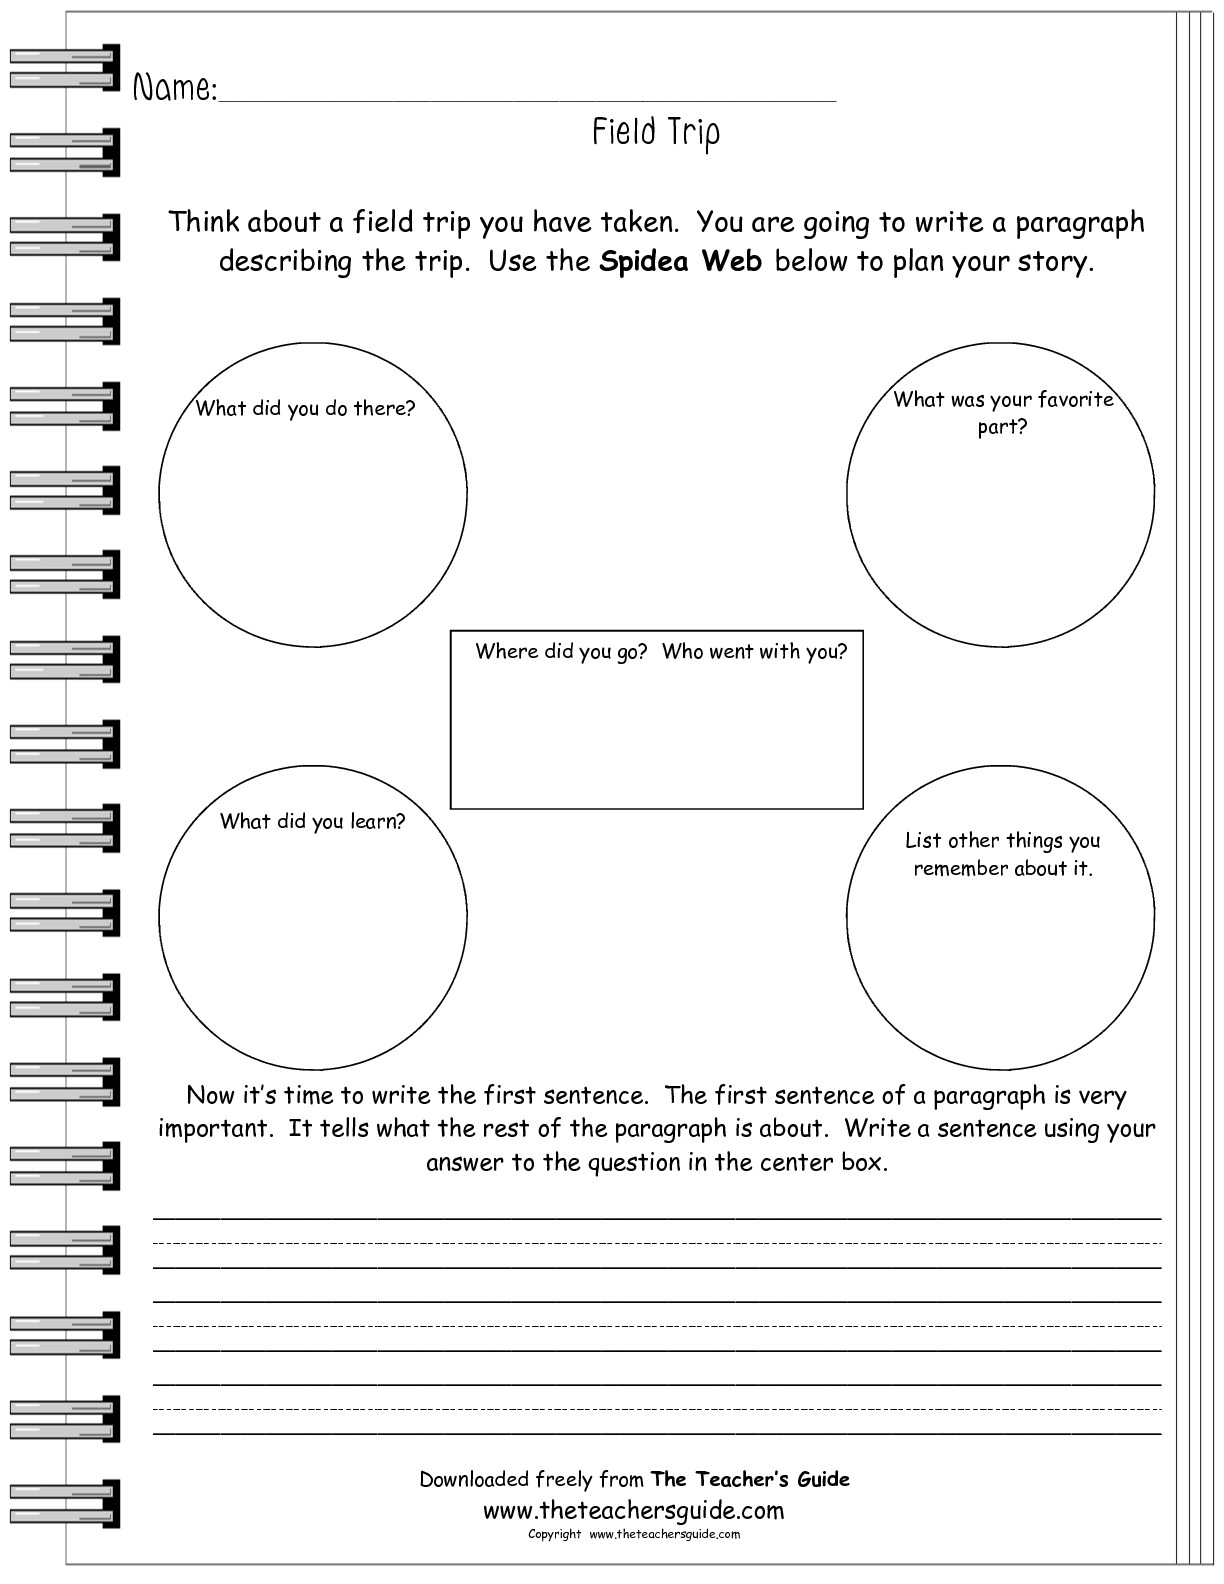 Student Reflection Grade Worksheet